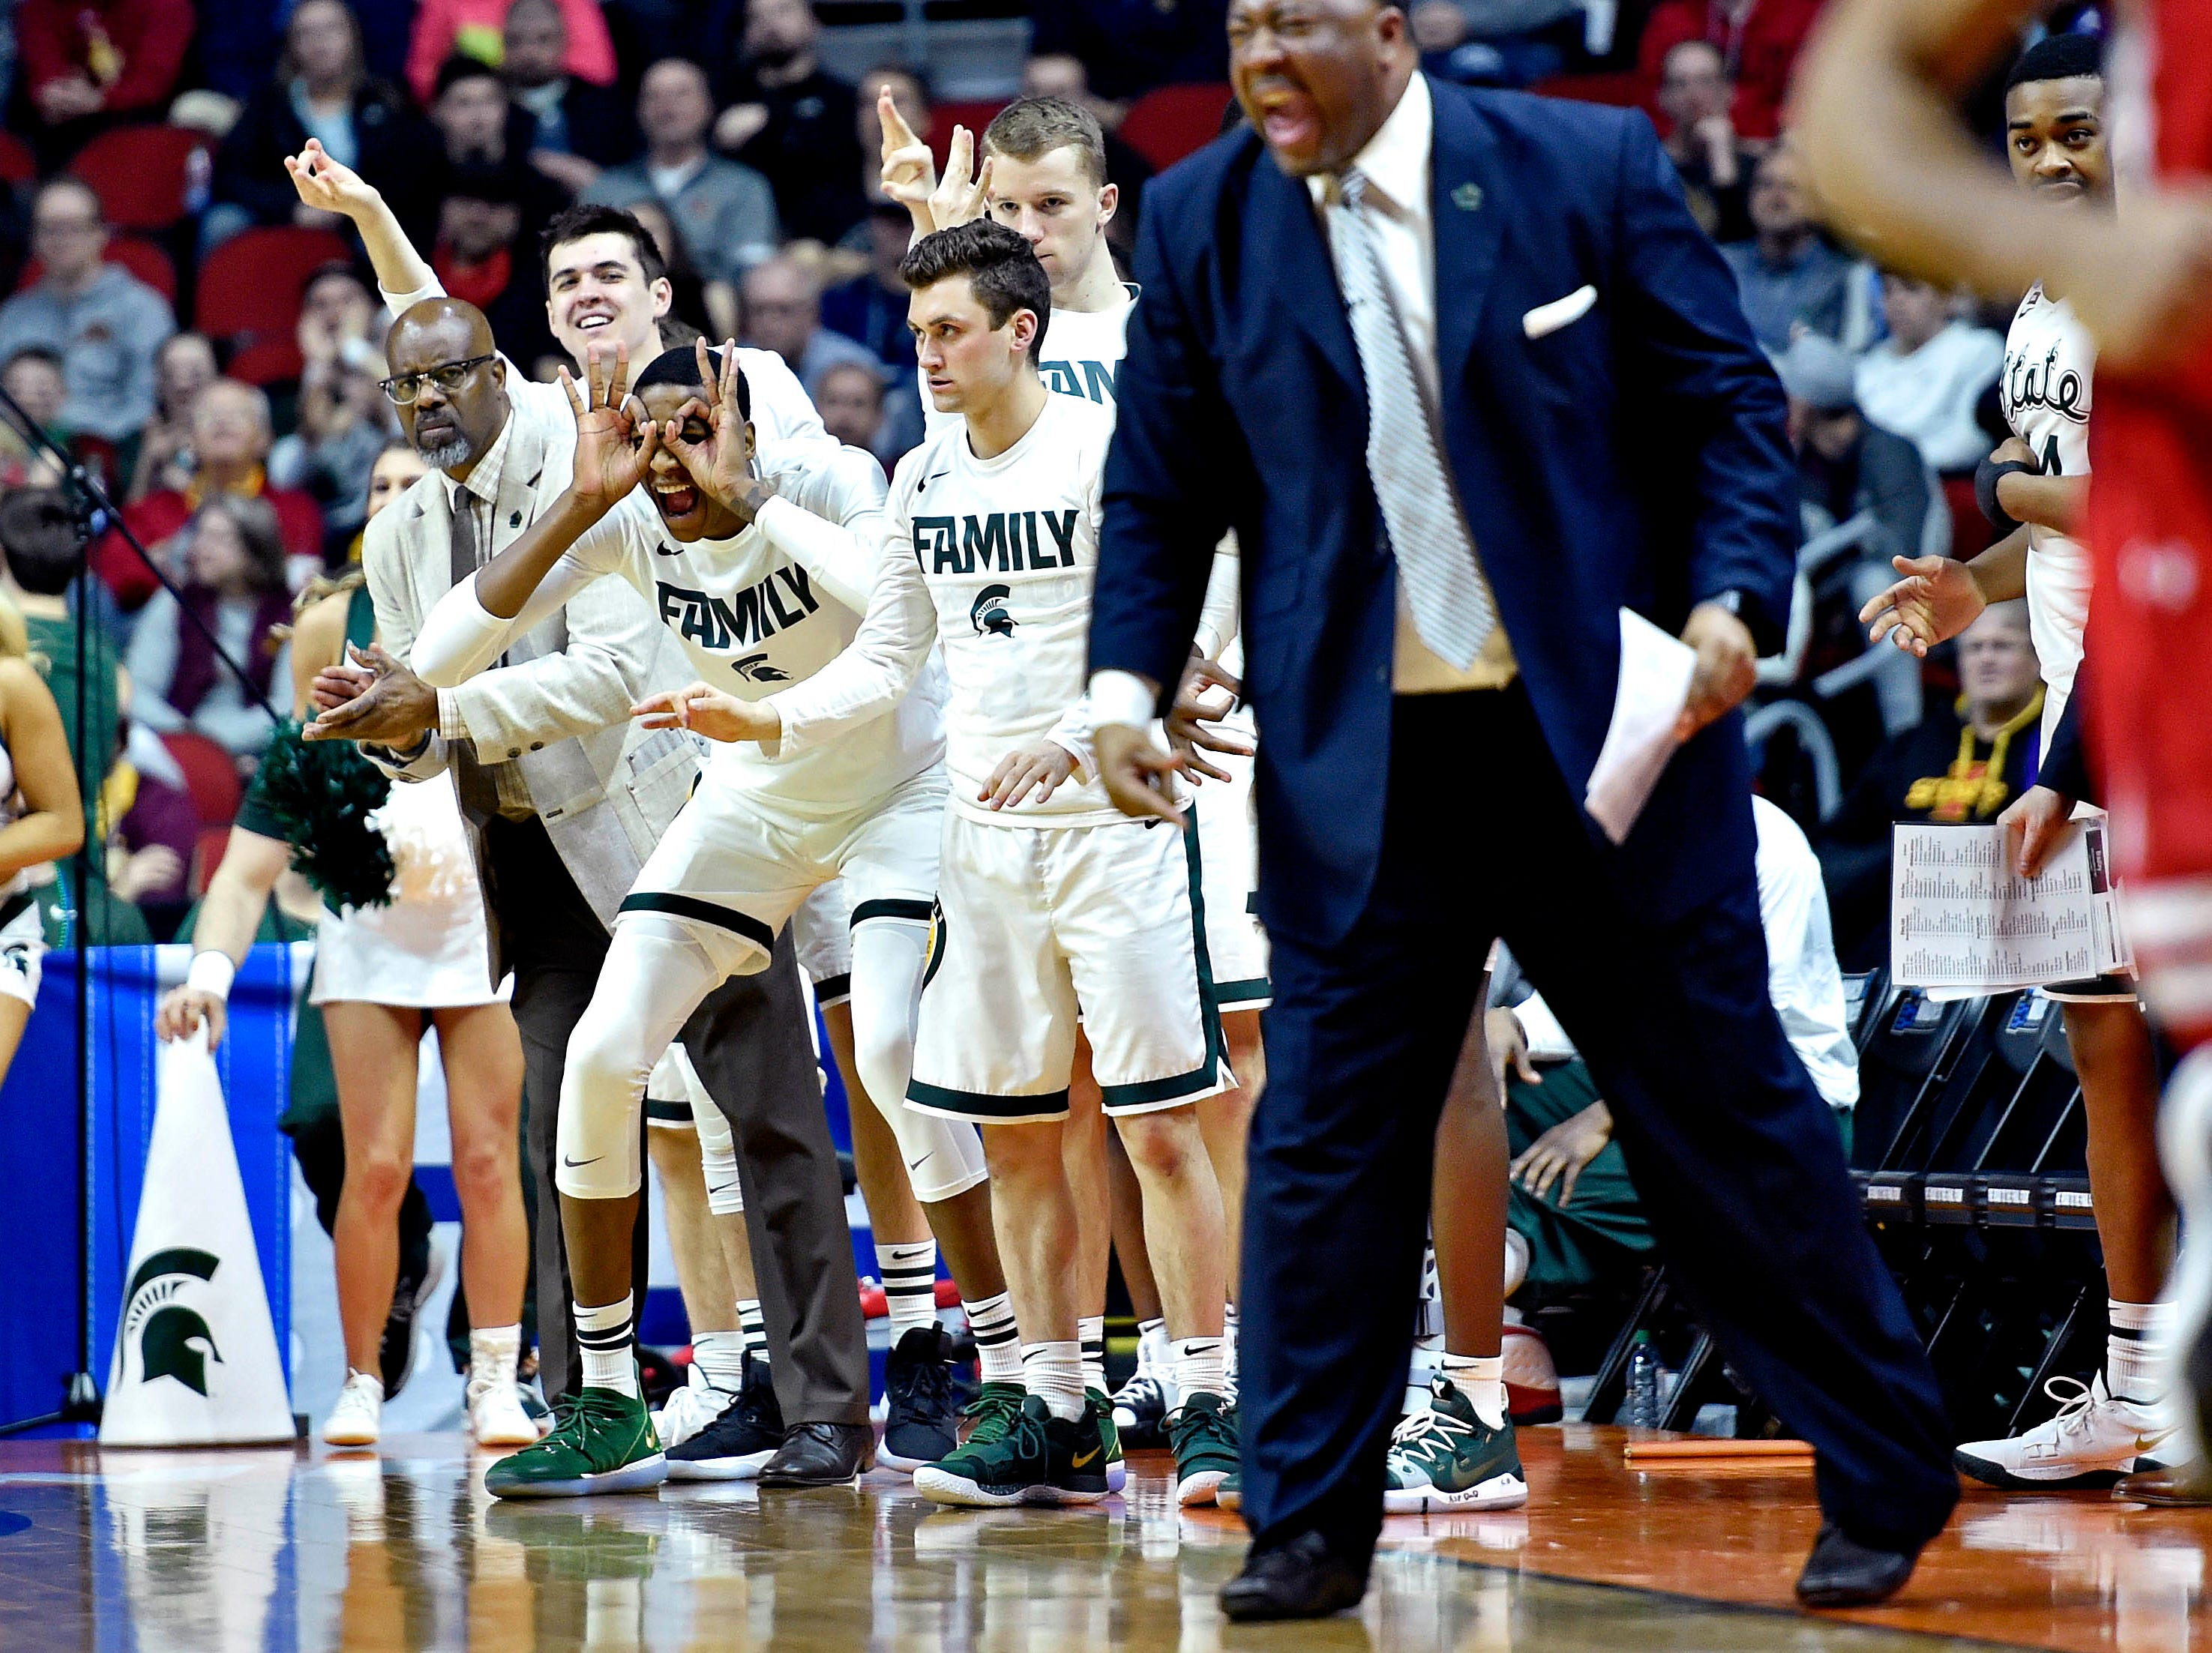 Mar 21, 2019; Des Moines, IA, United States; The Michigan State Spartans bench celebrates during the second half against the Bradley Braves in the first round of the 2019 NCAA Tournament at Wells Fargo Arena. Mandatory Credit: Jeffrey Becker-USA TODAY Sports